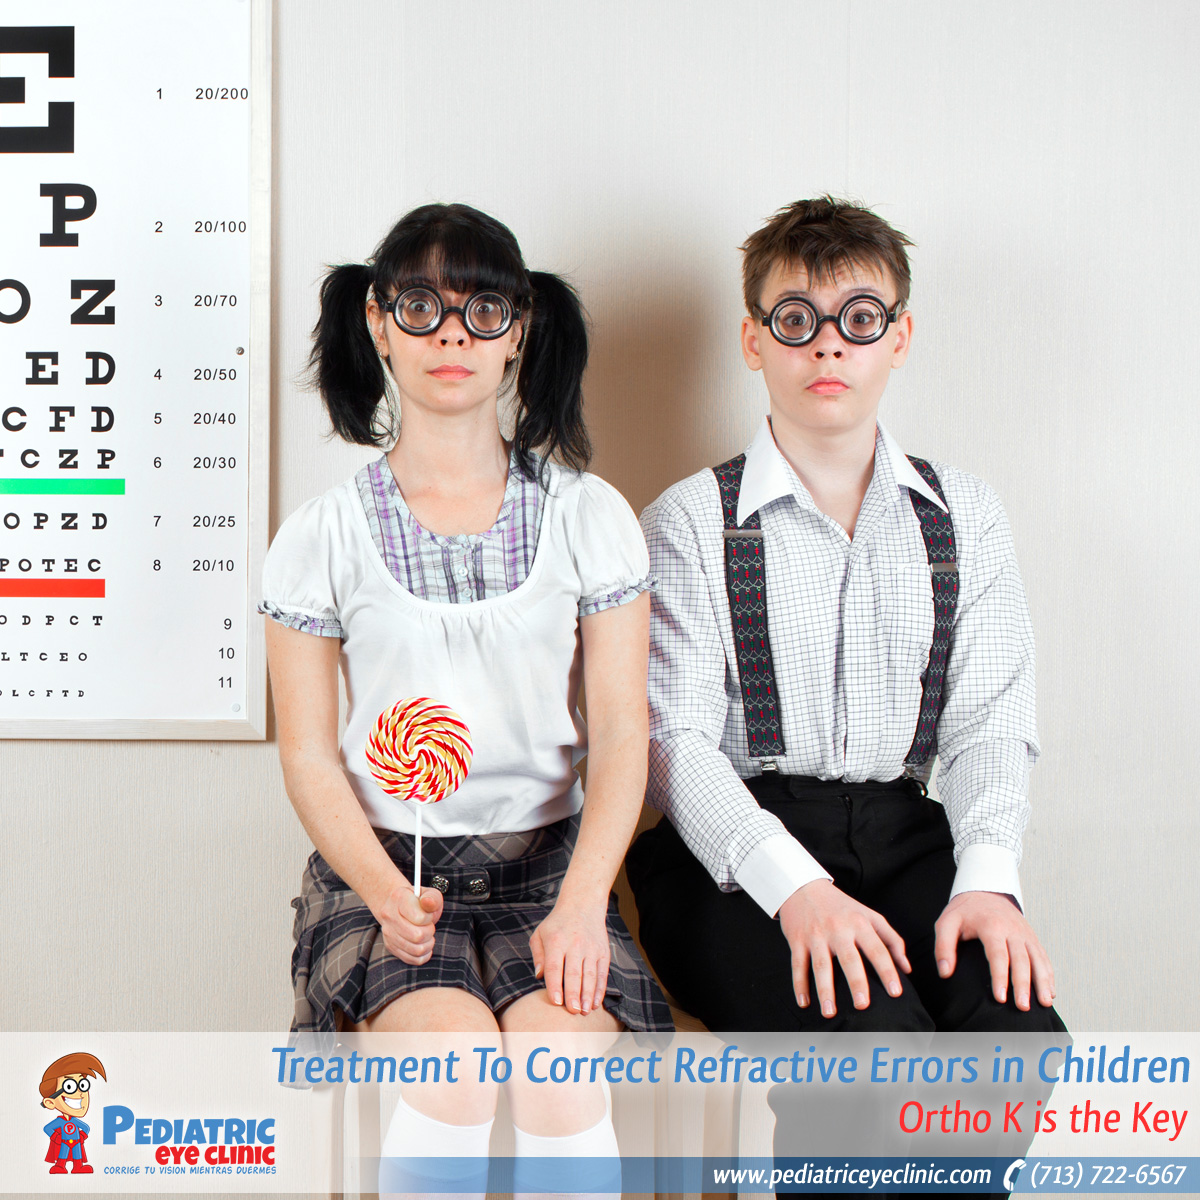 05-treatment-to-correct-refractive-errors-in-children